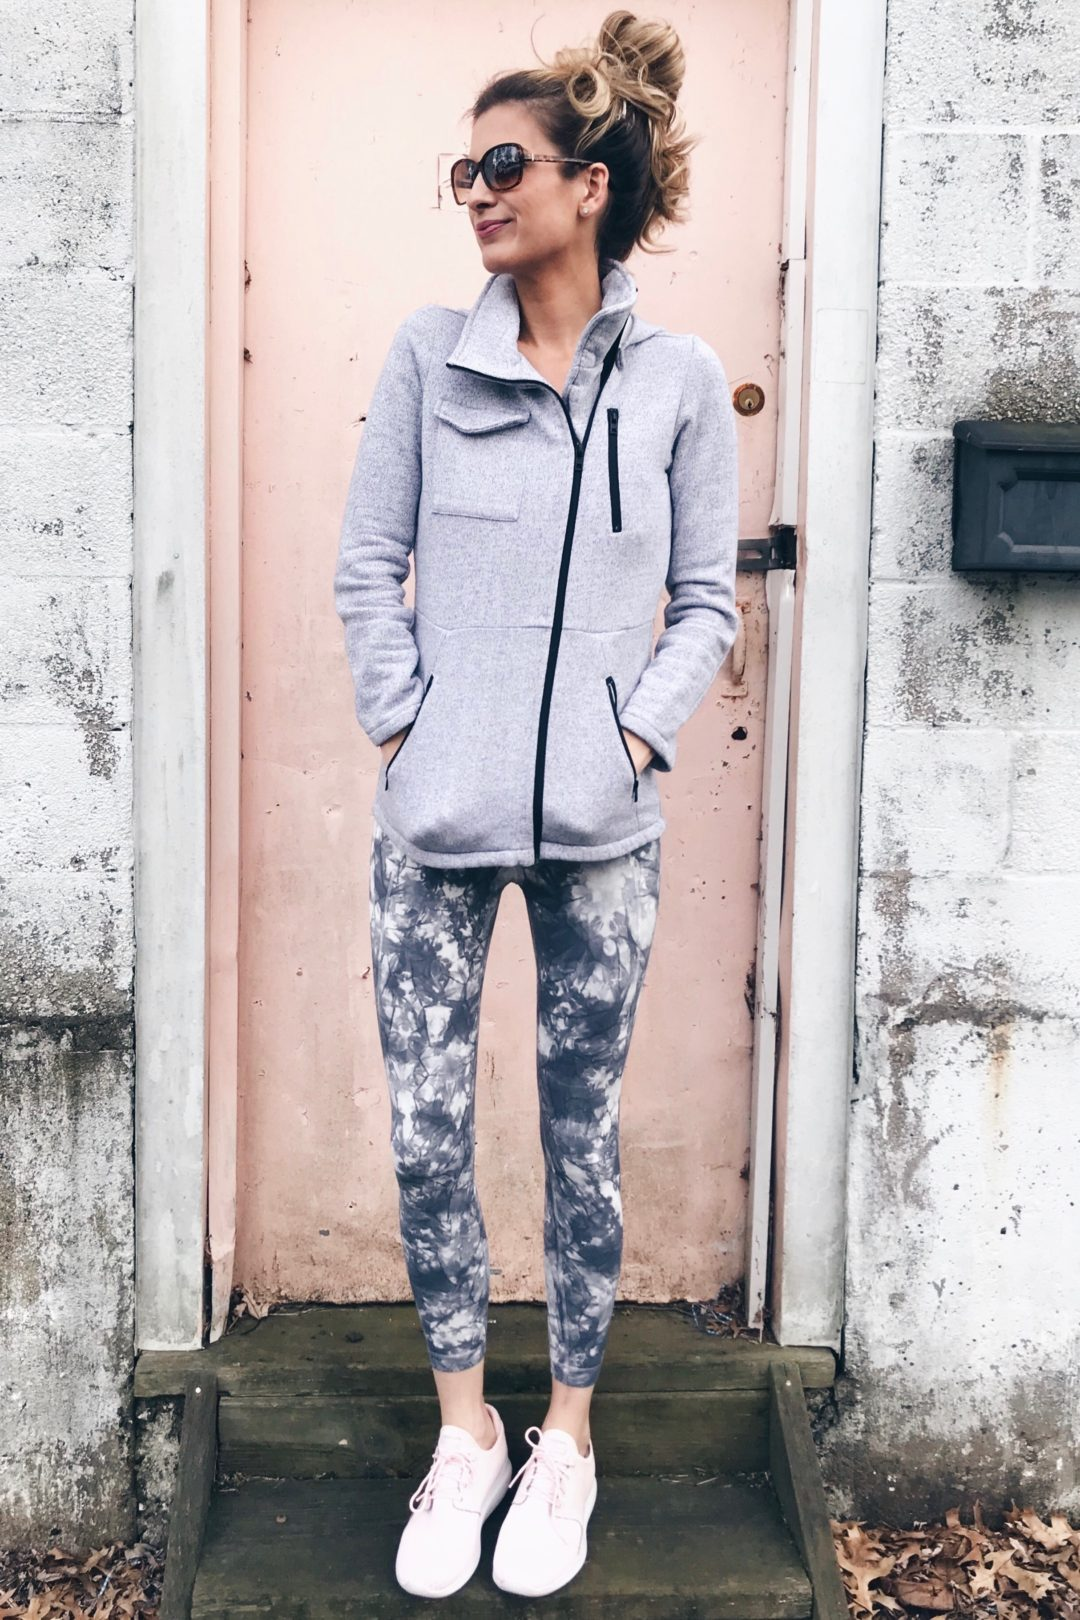 athleisure leggings - tie dye leggings and sweatshirt jacket on pinterestingplans connecticut lifestyle blogger